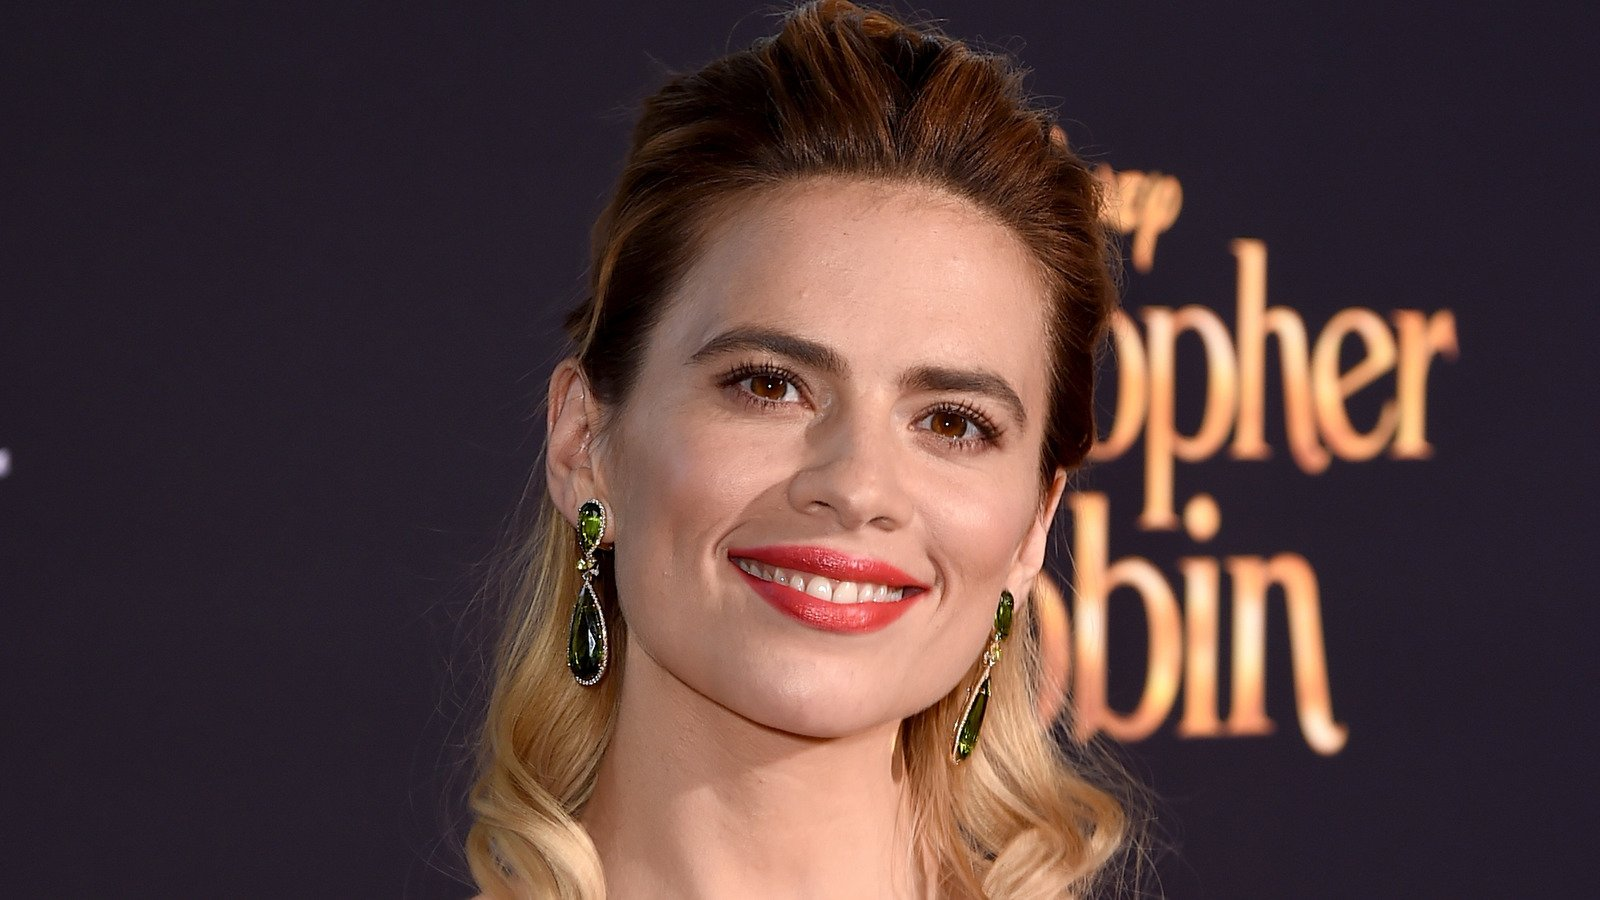 Hayley Atwell: How Much Is The Actress Worth?